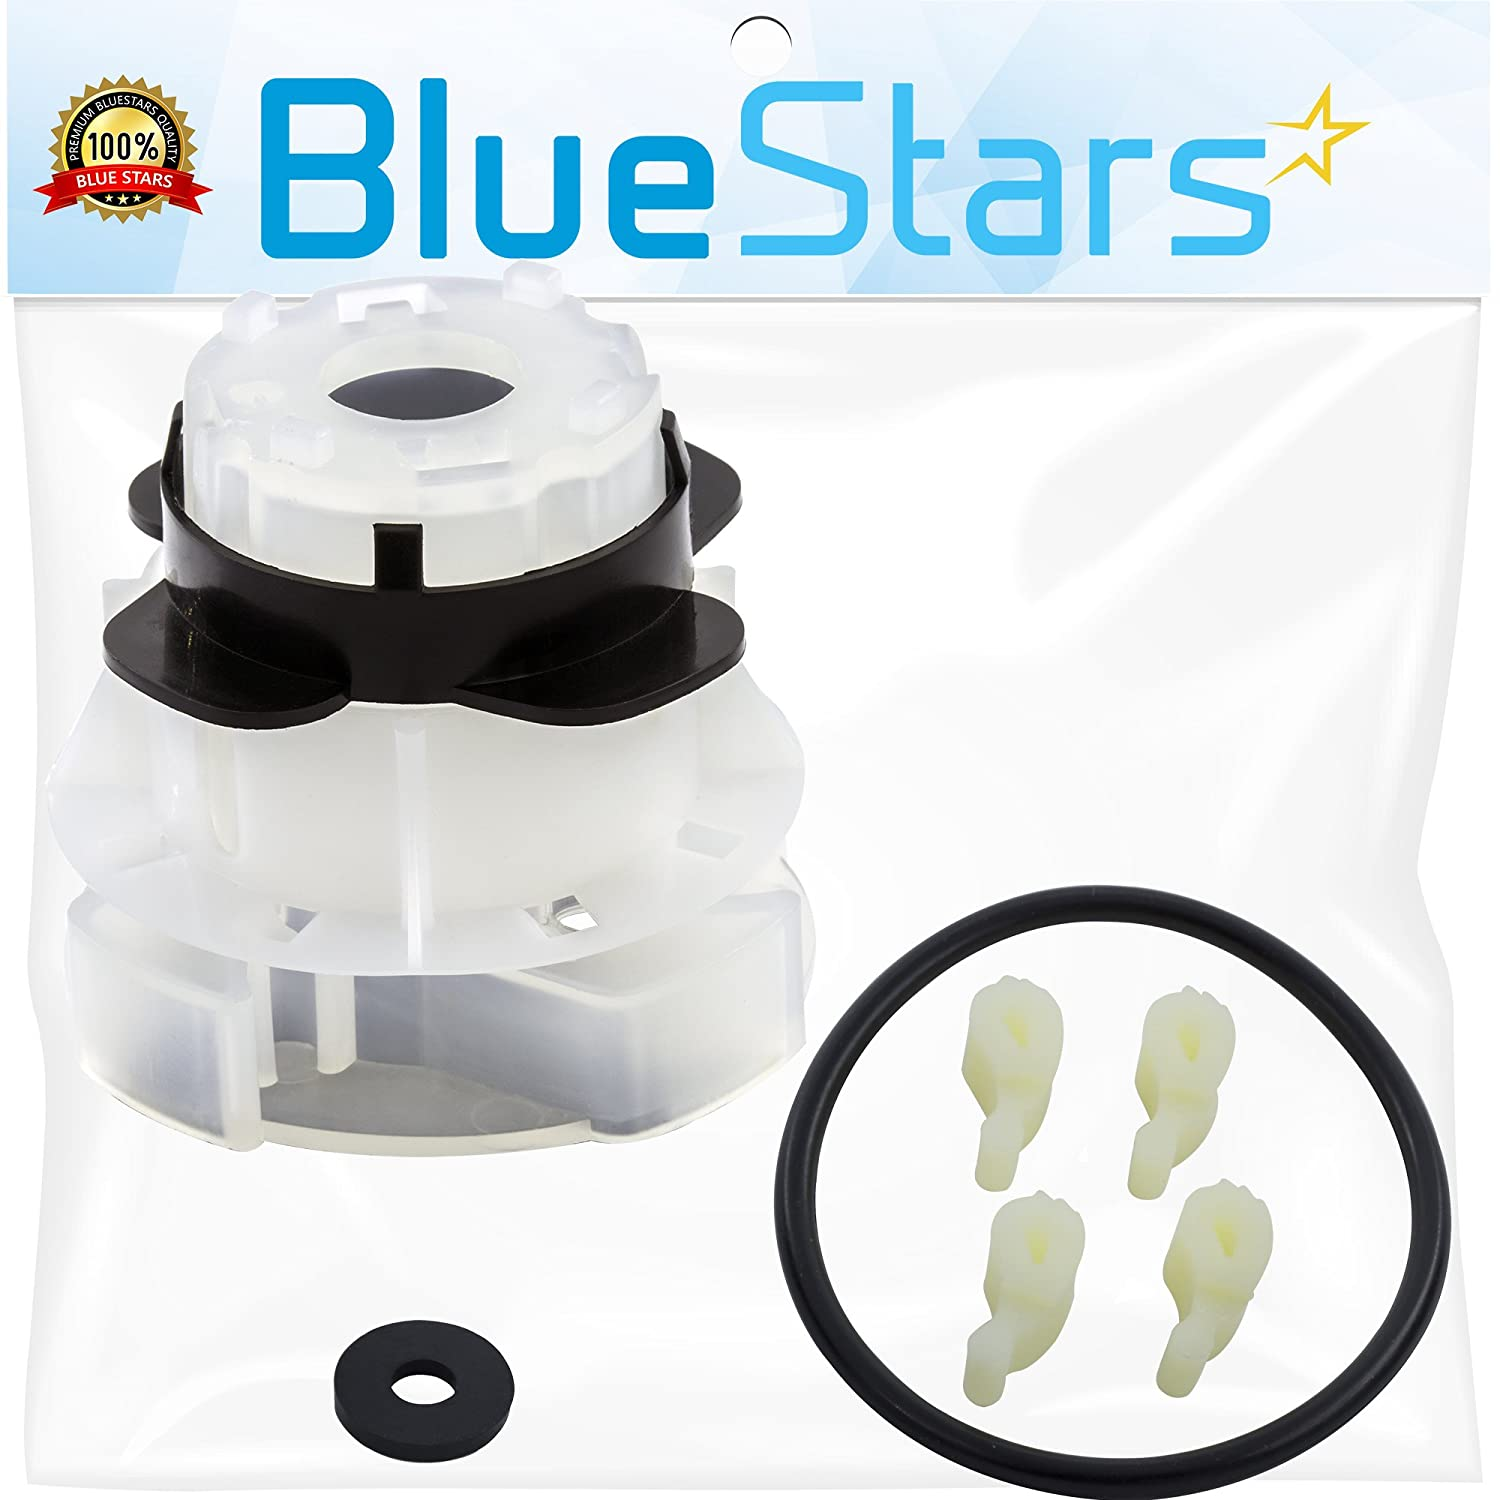 Ultra Durable 285811 Medium Agitator Repair Kit Replacement by Blue Stars - Exact Fit for Whirlpool & Kenmore Washer - Simple Instructions Included - Replaces 3363663 AP3138838 PS334650